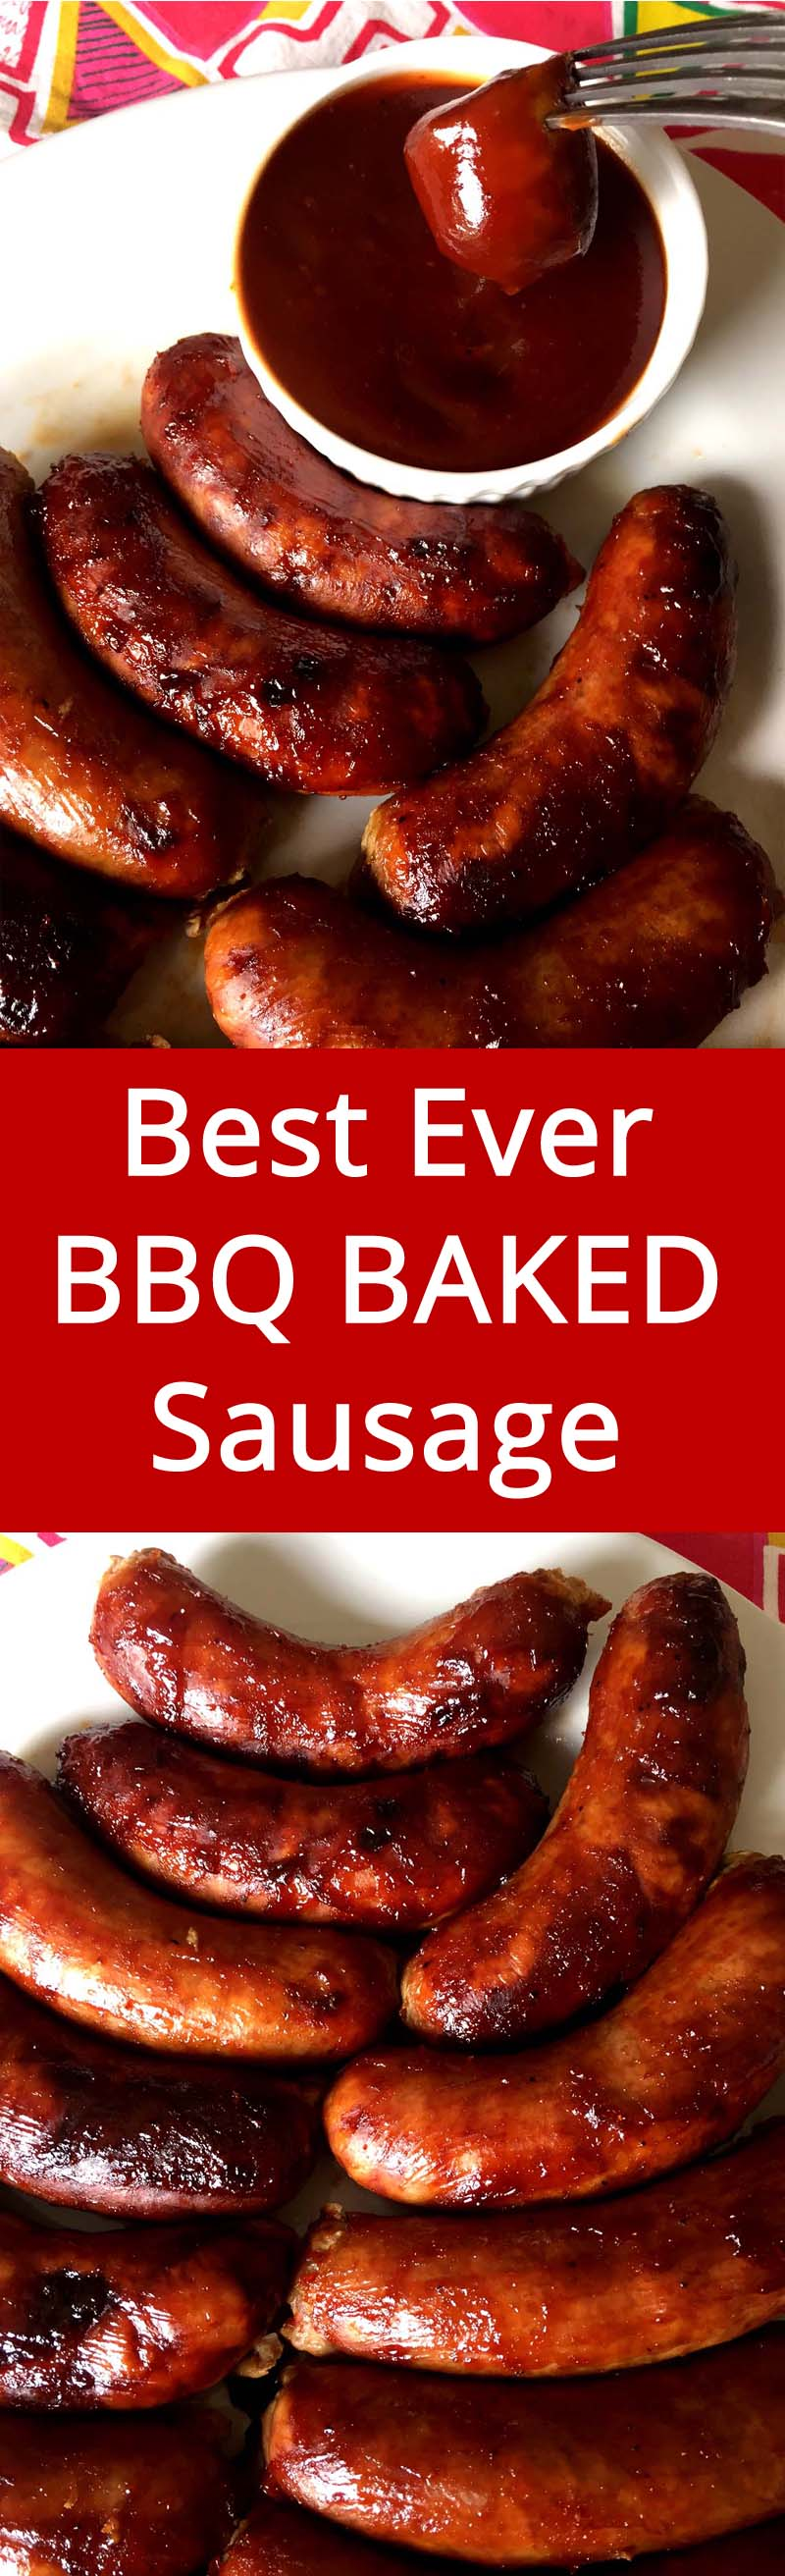 This Bbq Baked Sausage Is Always A Hit Super Easy To Make I Love